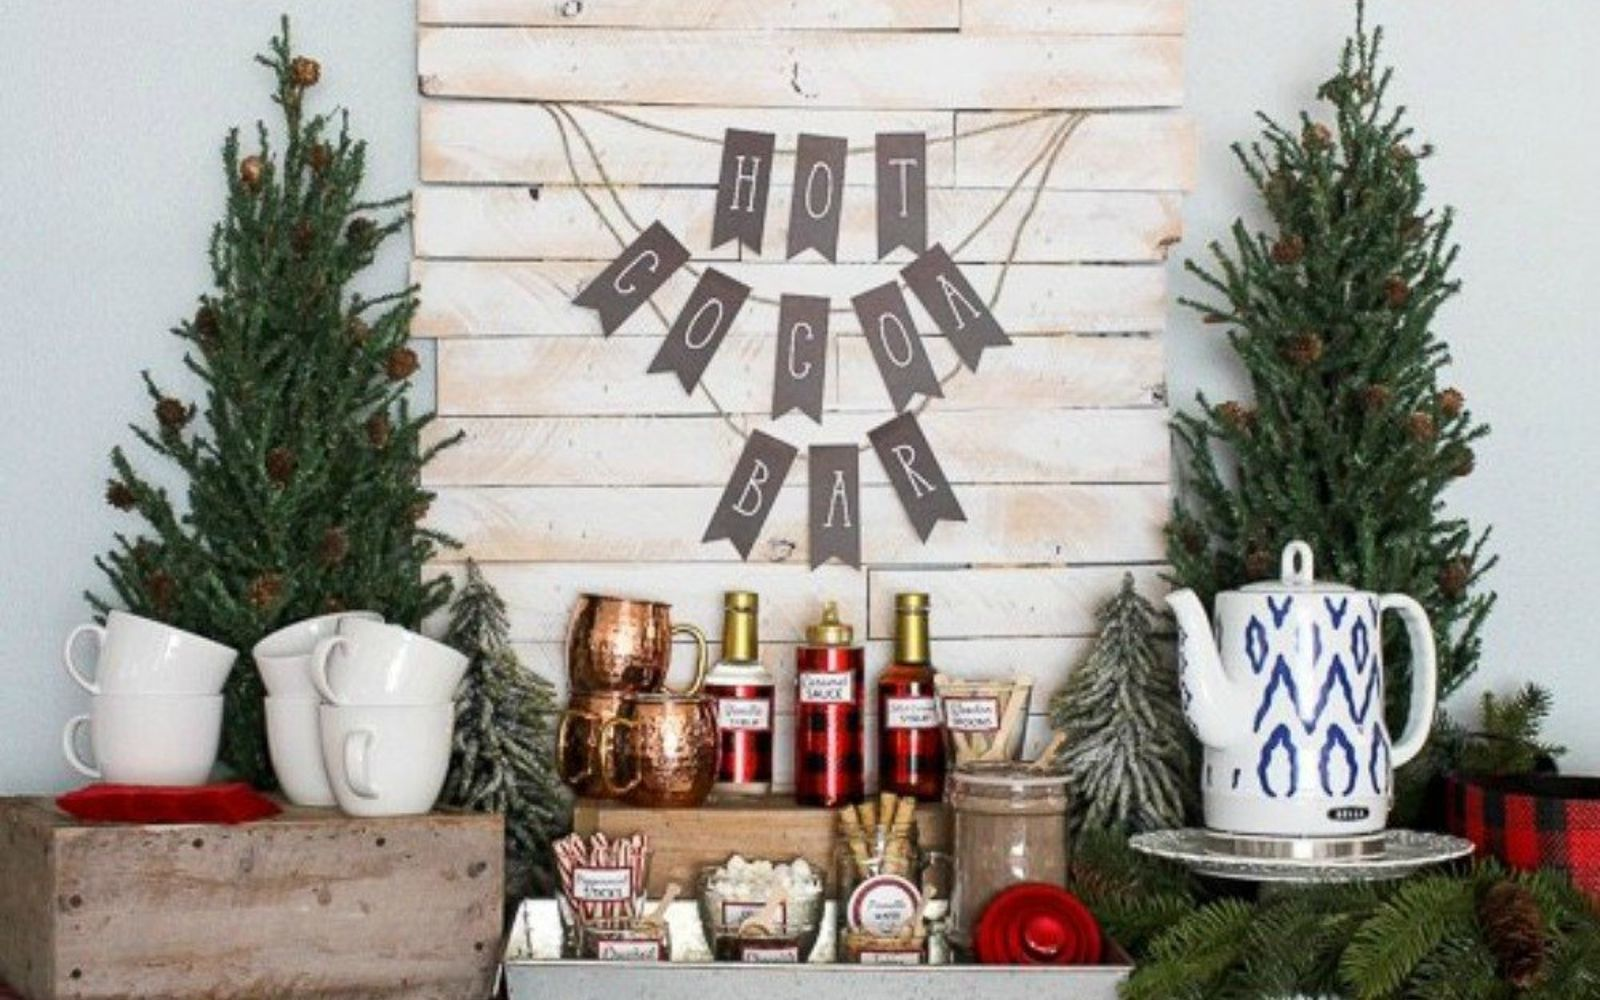 s 16 affordable ways to warm up your home this winter, home decor, Set up a hot cocoa stand